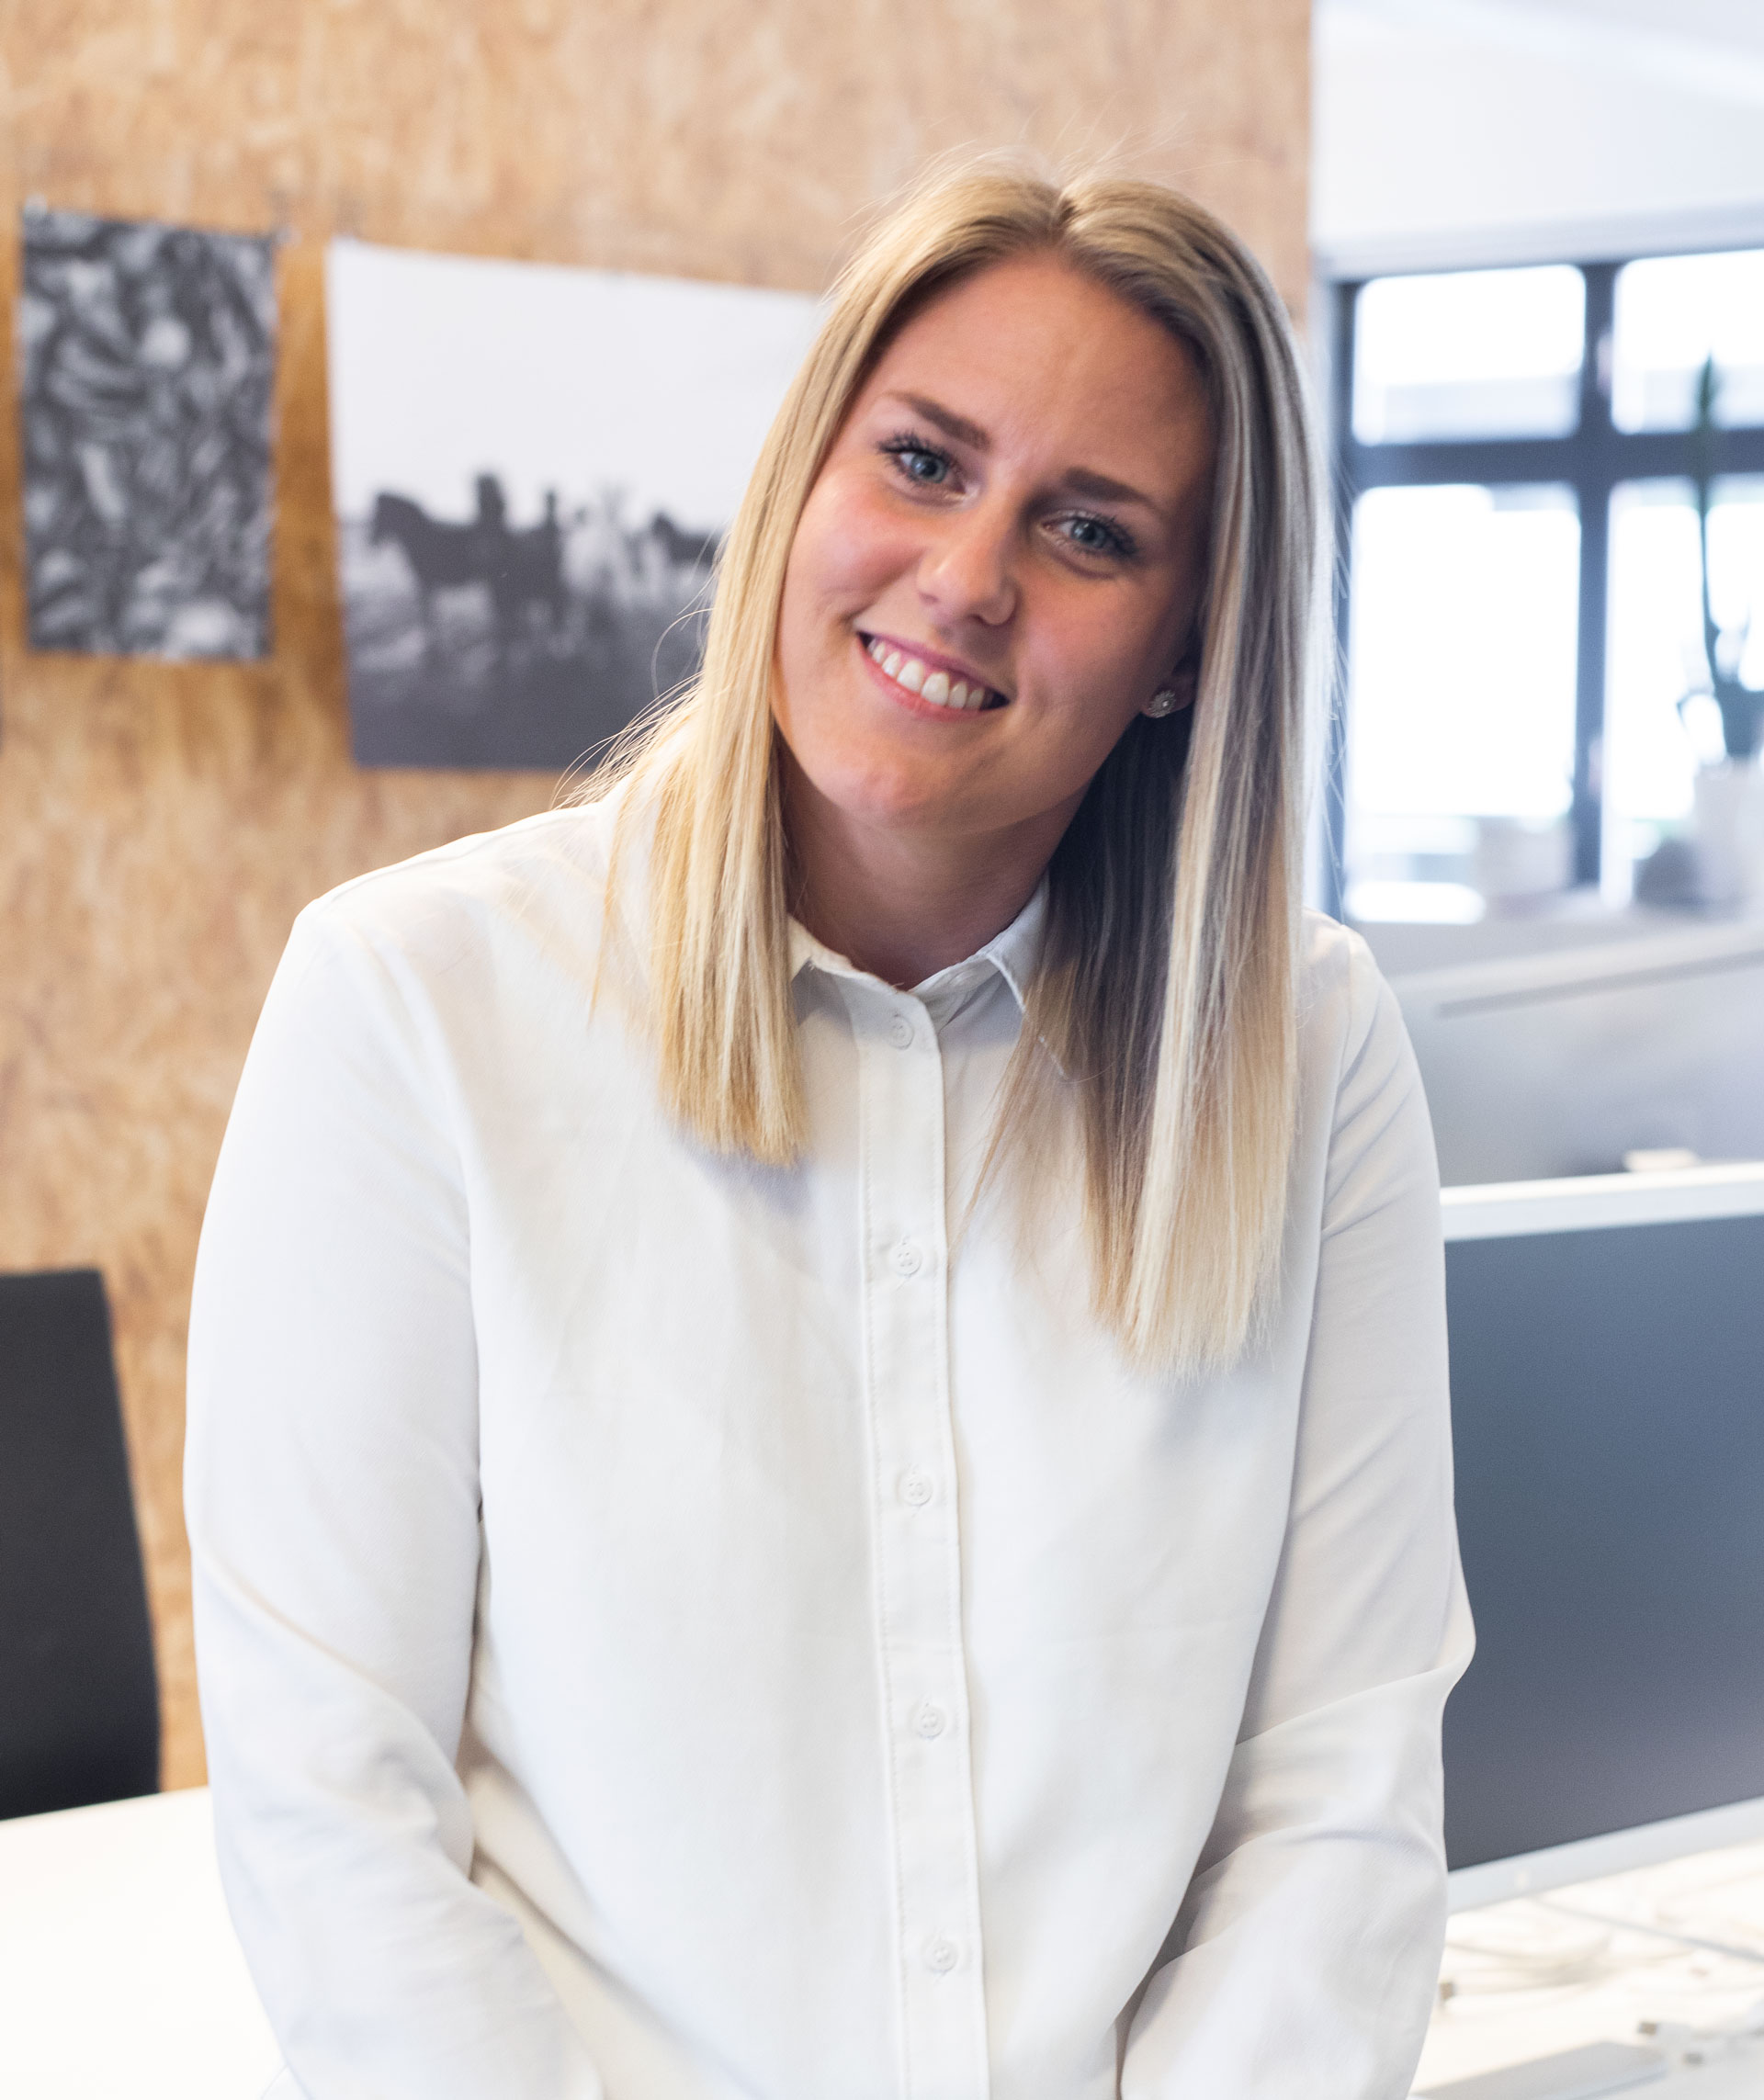 We're happy to welcome Marianne to our design team. Prior to her appointment with Strømme Throndsen, she worked in London. Used to creating within high demand - tight deadline projects, Marianne brings an exciting, high energy international flair to the team. -